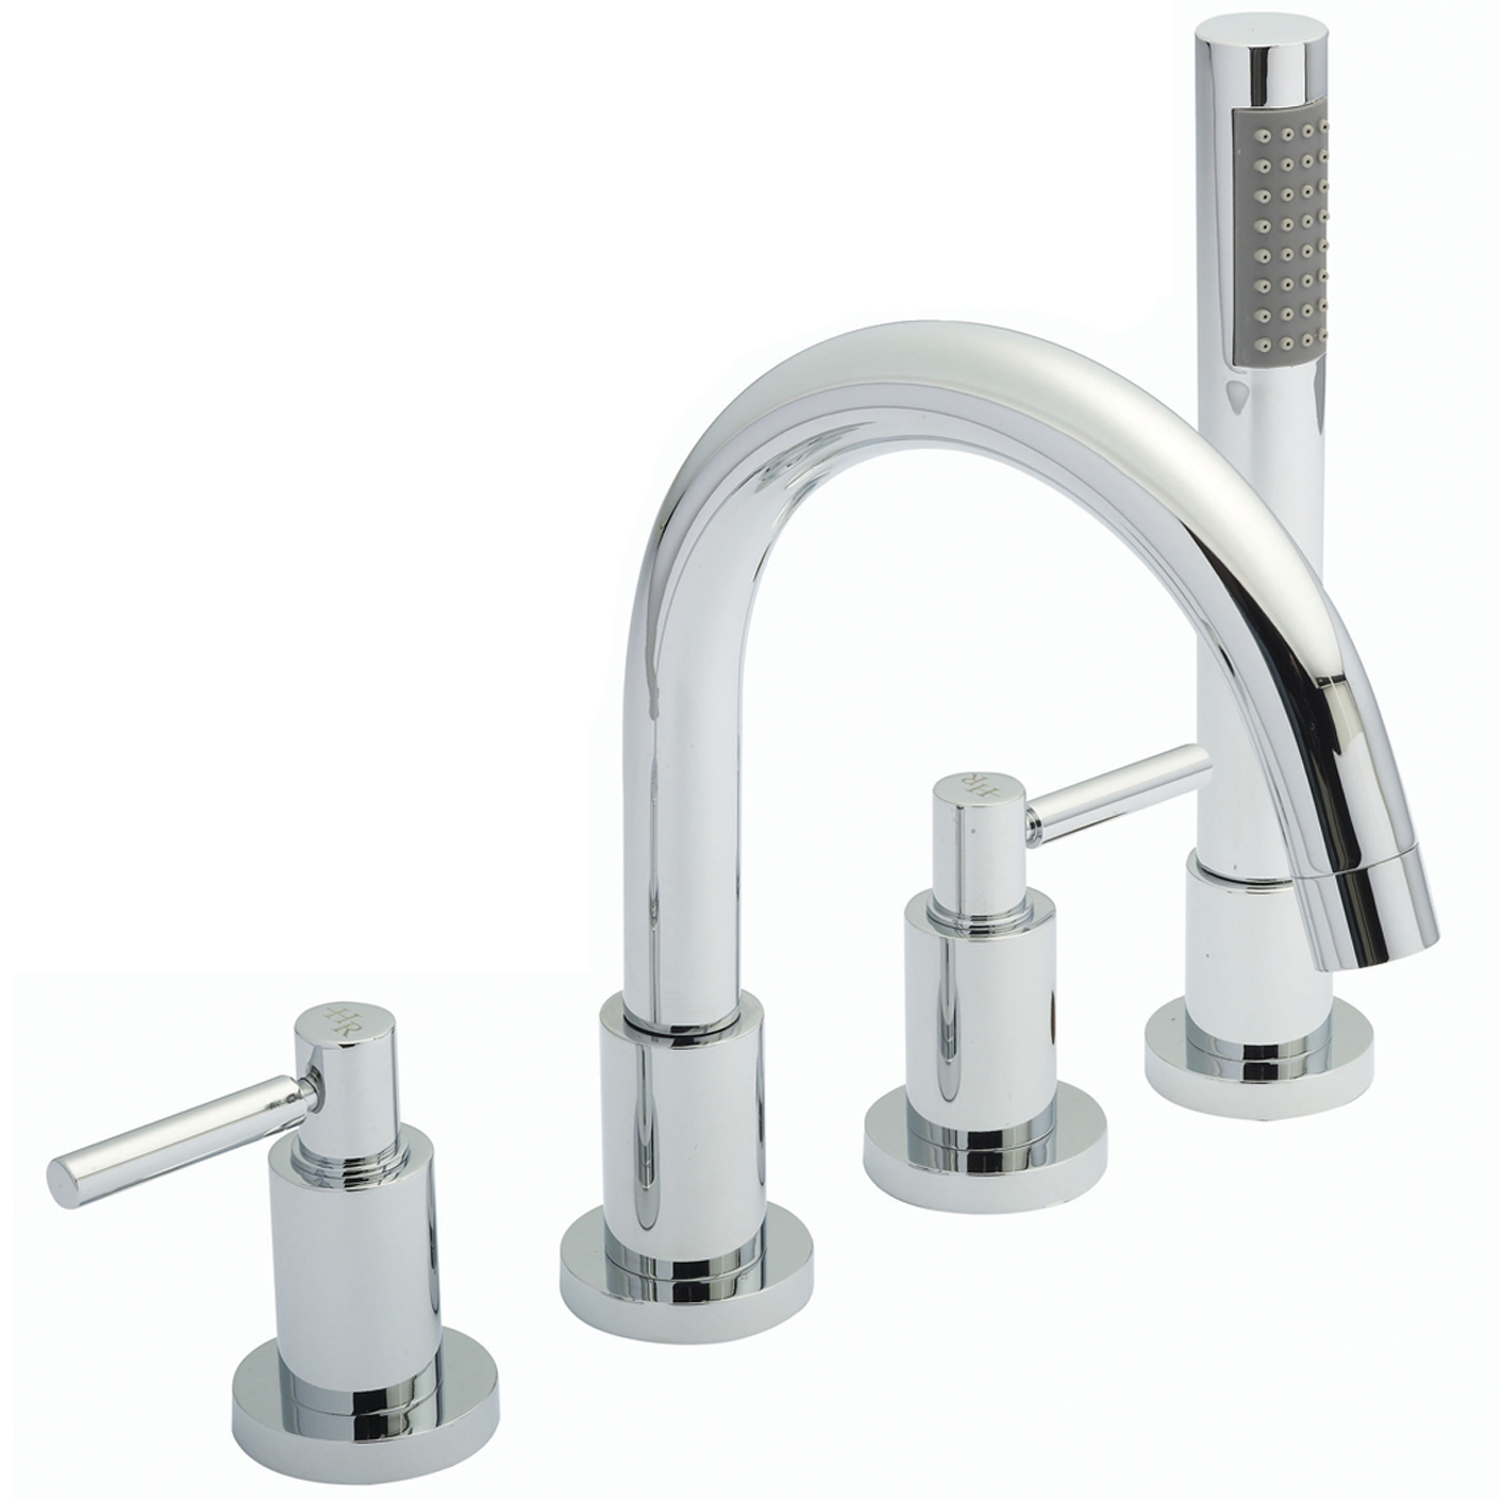 Hudson Reed Tec Lever Basin Mixer Tap and Shower Mixer Tap with Shower Kit, Chrome-0